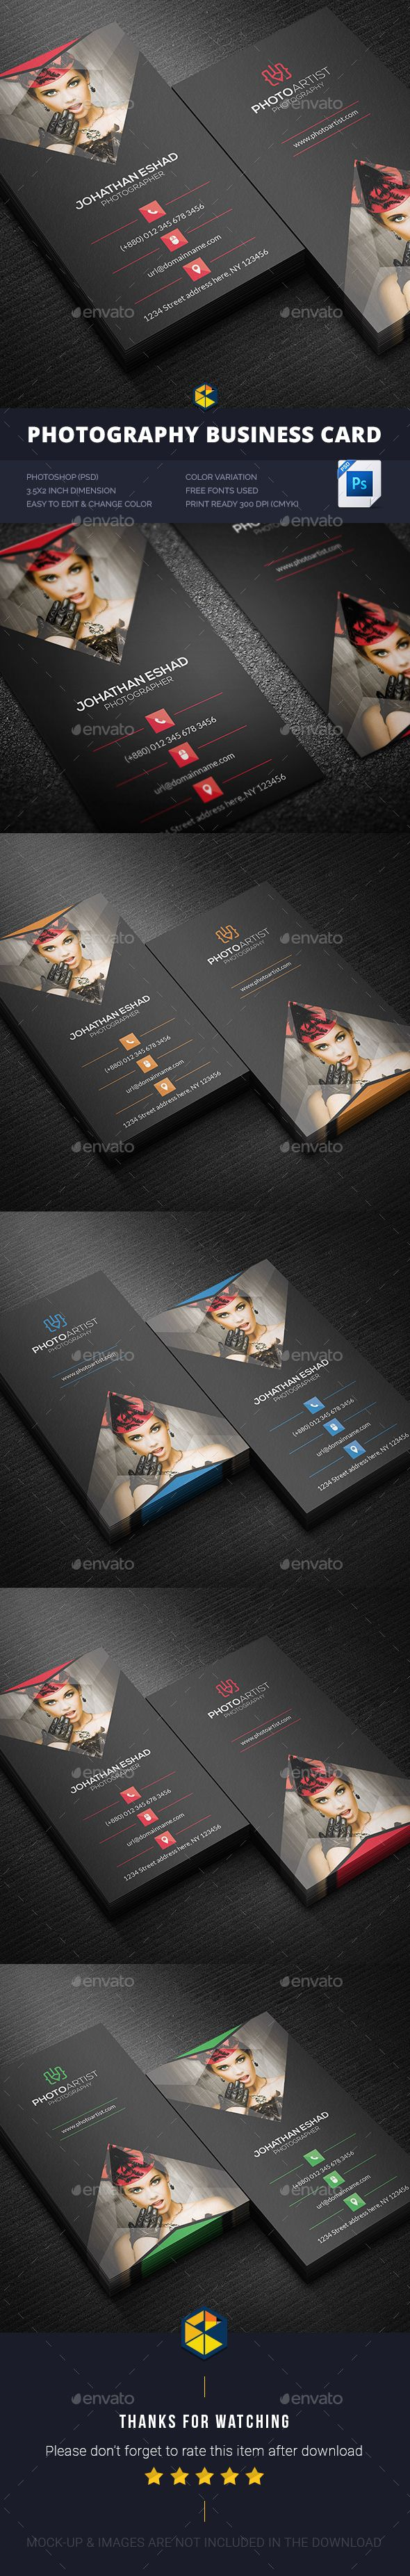 Photography business card design template business cards print photography business card design template business cards print template psd download here https fbccfo Images